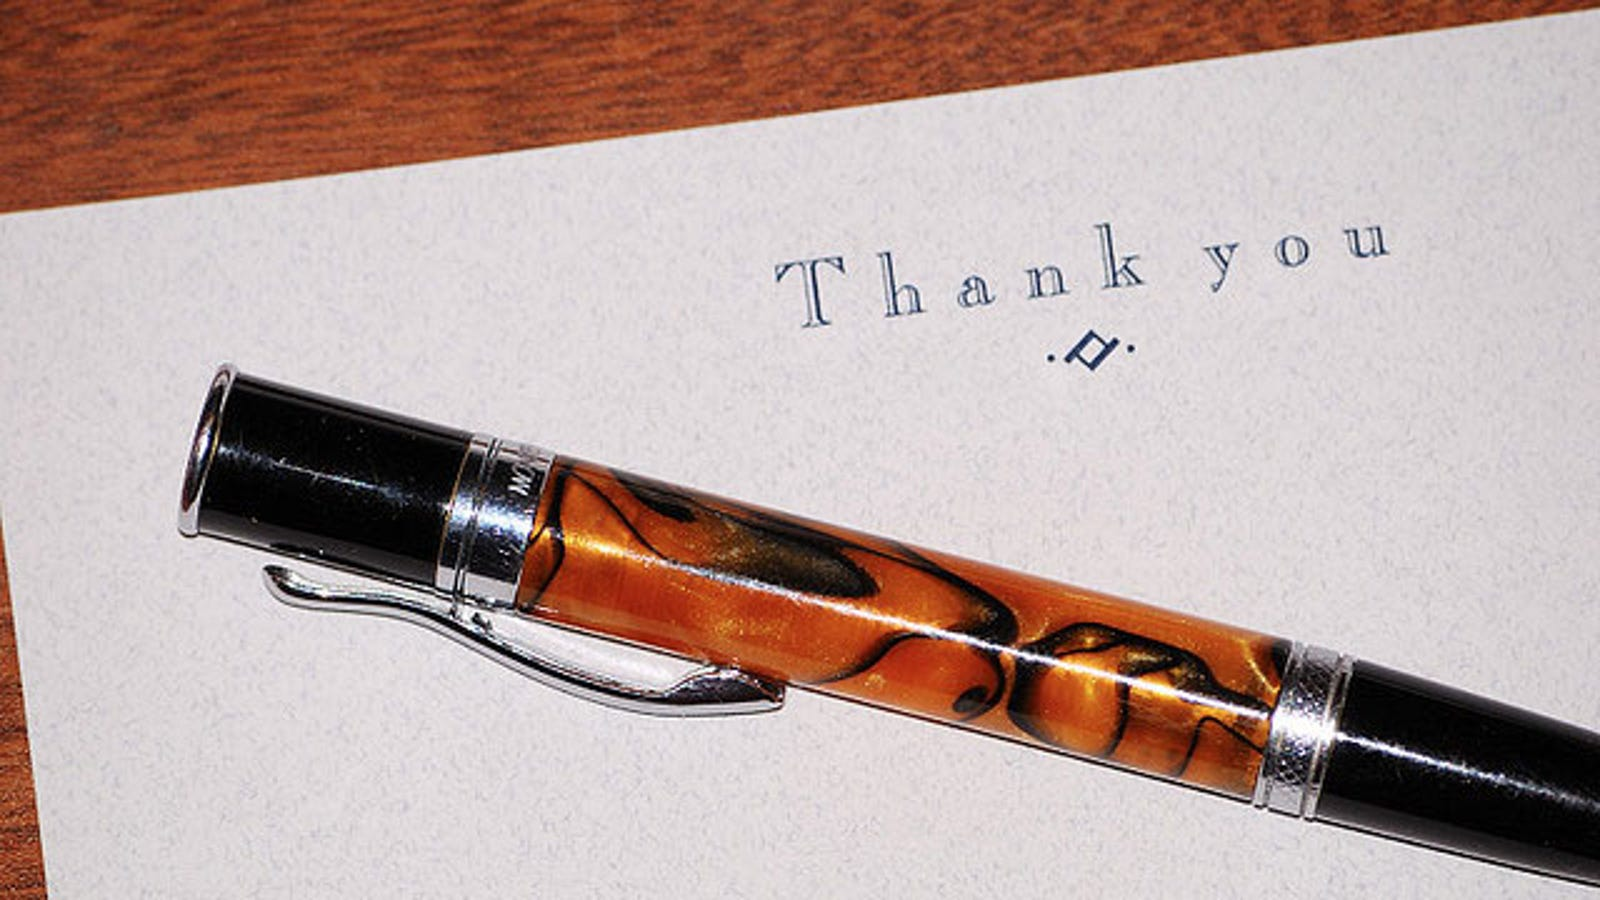 how to send a thank you note after job interview